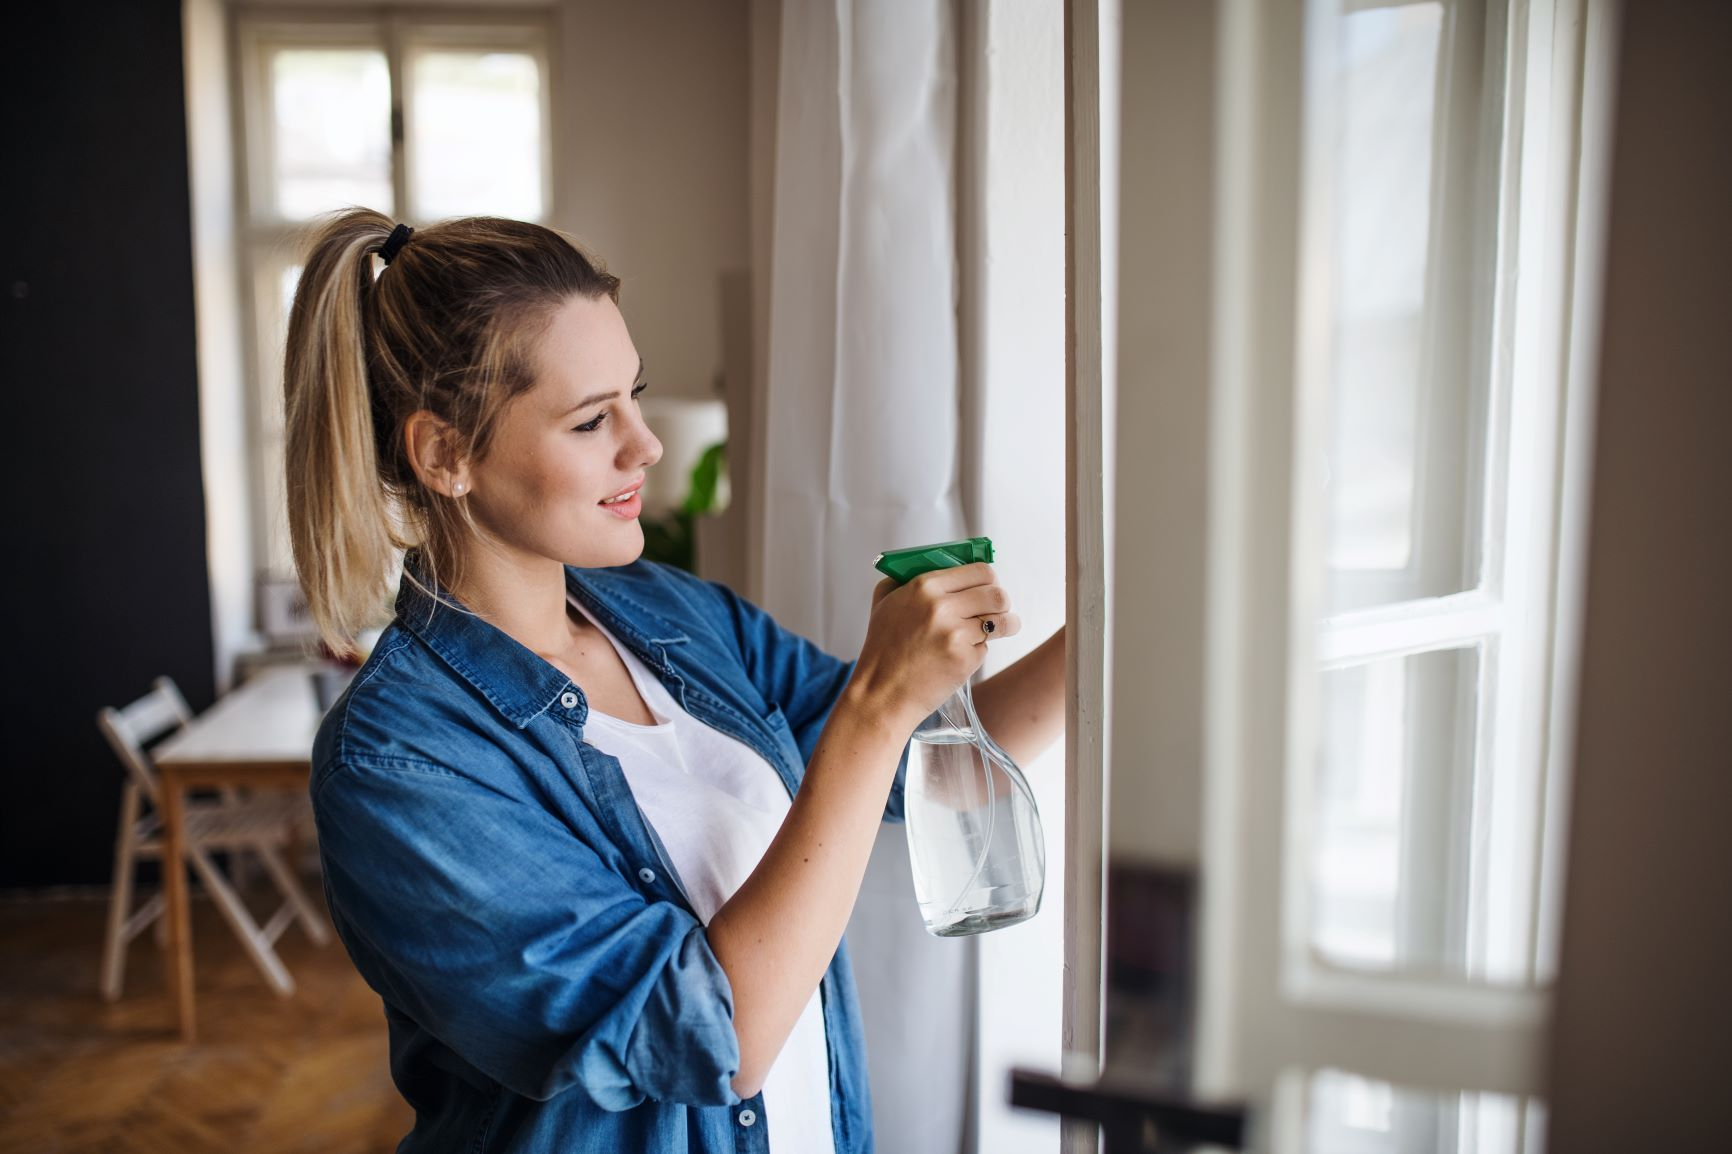 PREVENT CORONAVIRUS SPREAD BY CLEANING YOUR HOME WELL